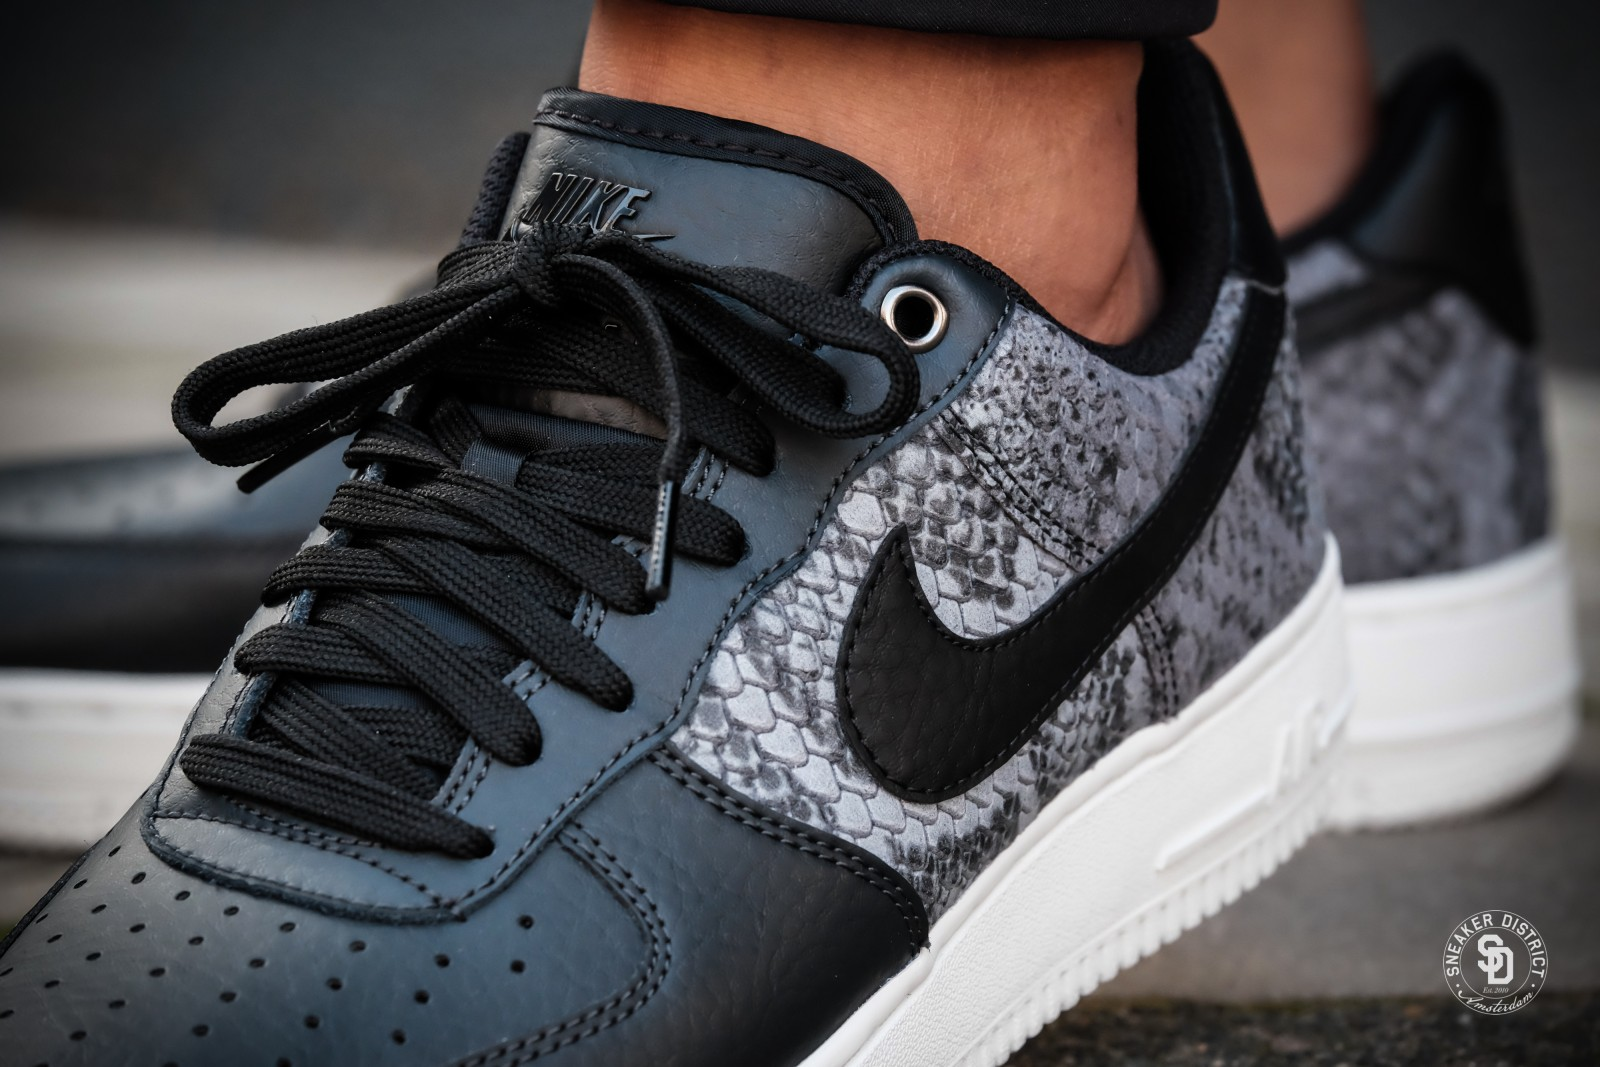 Nike '07 Air Force 1 '07 Nike LV8 Anthracite Noir Summit White 823511 003 be9f28